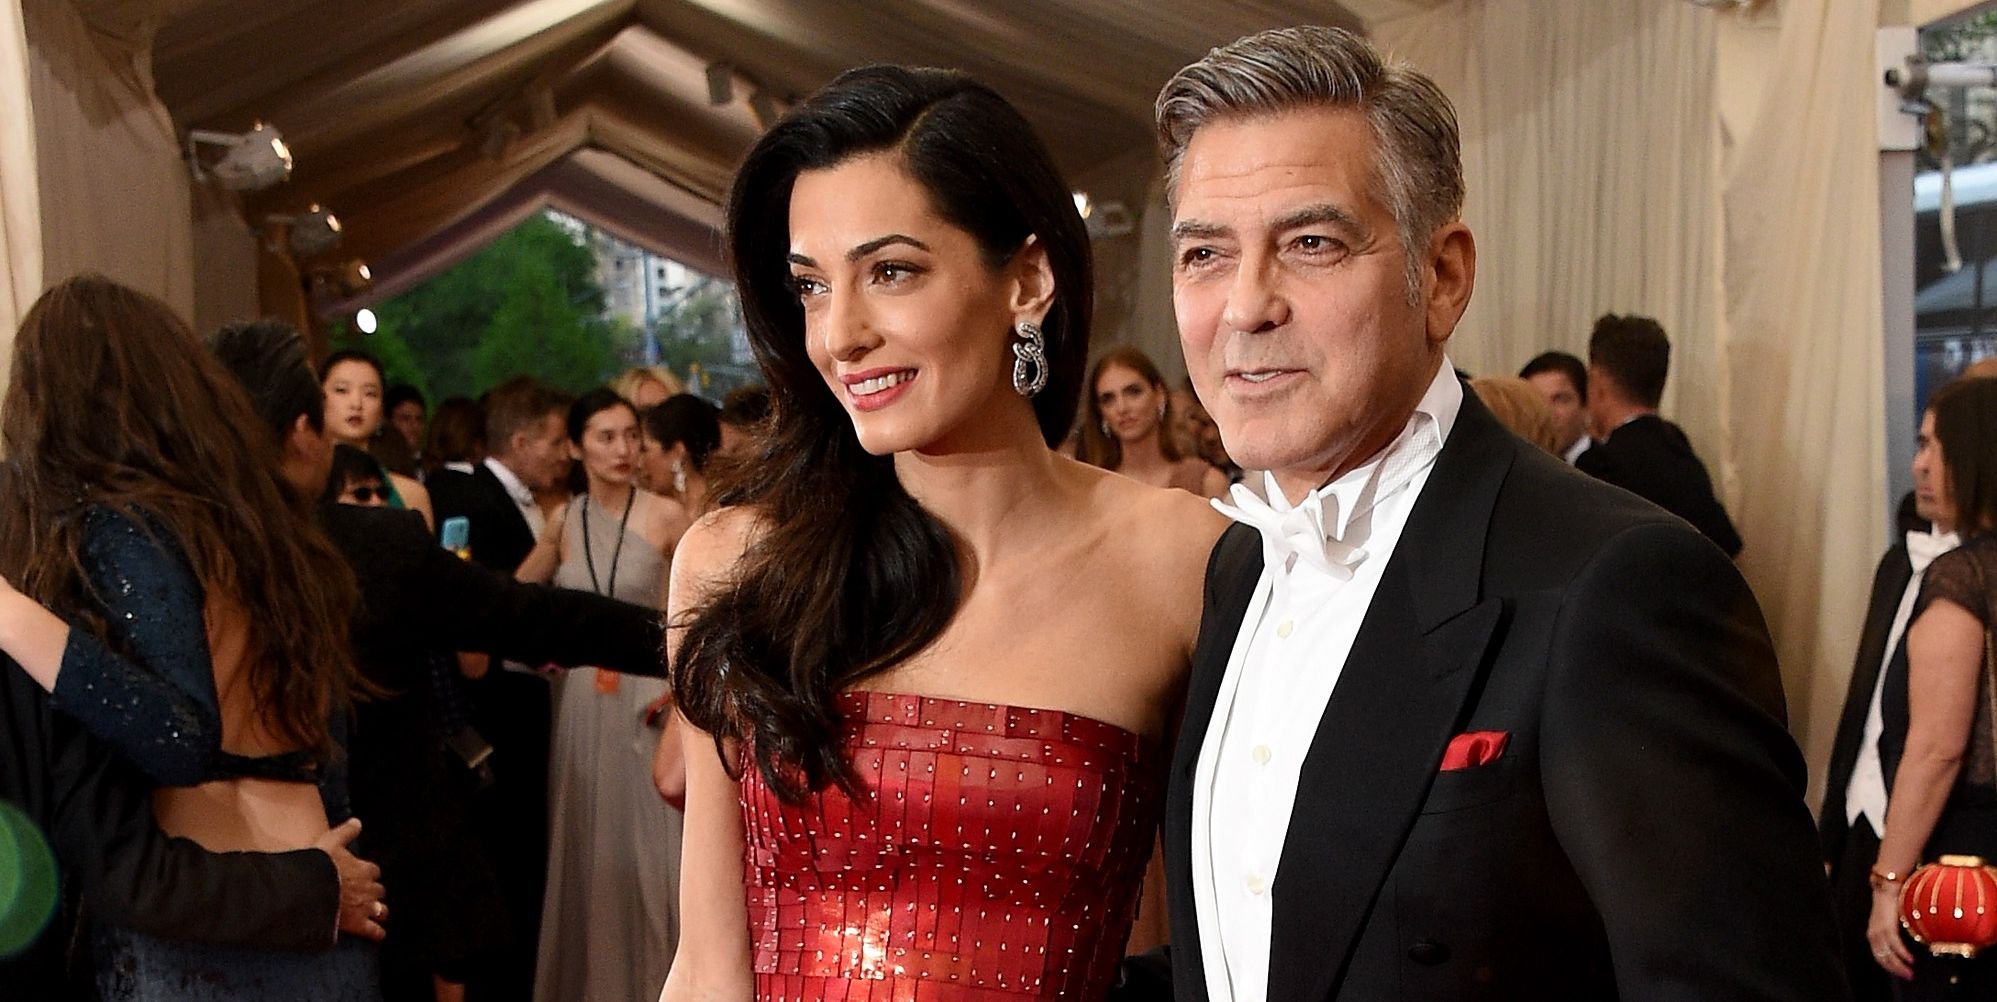 George and Amal Clooney Have Security Issues Amid Her ISIS Case